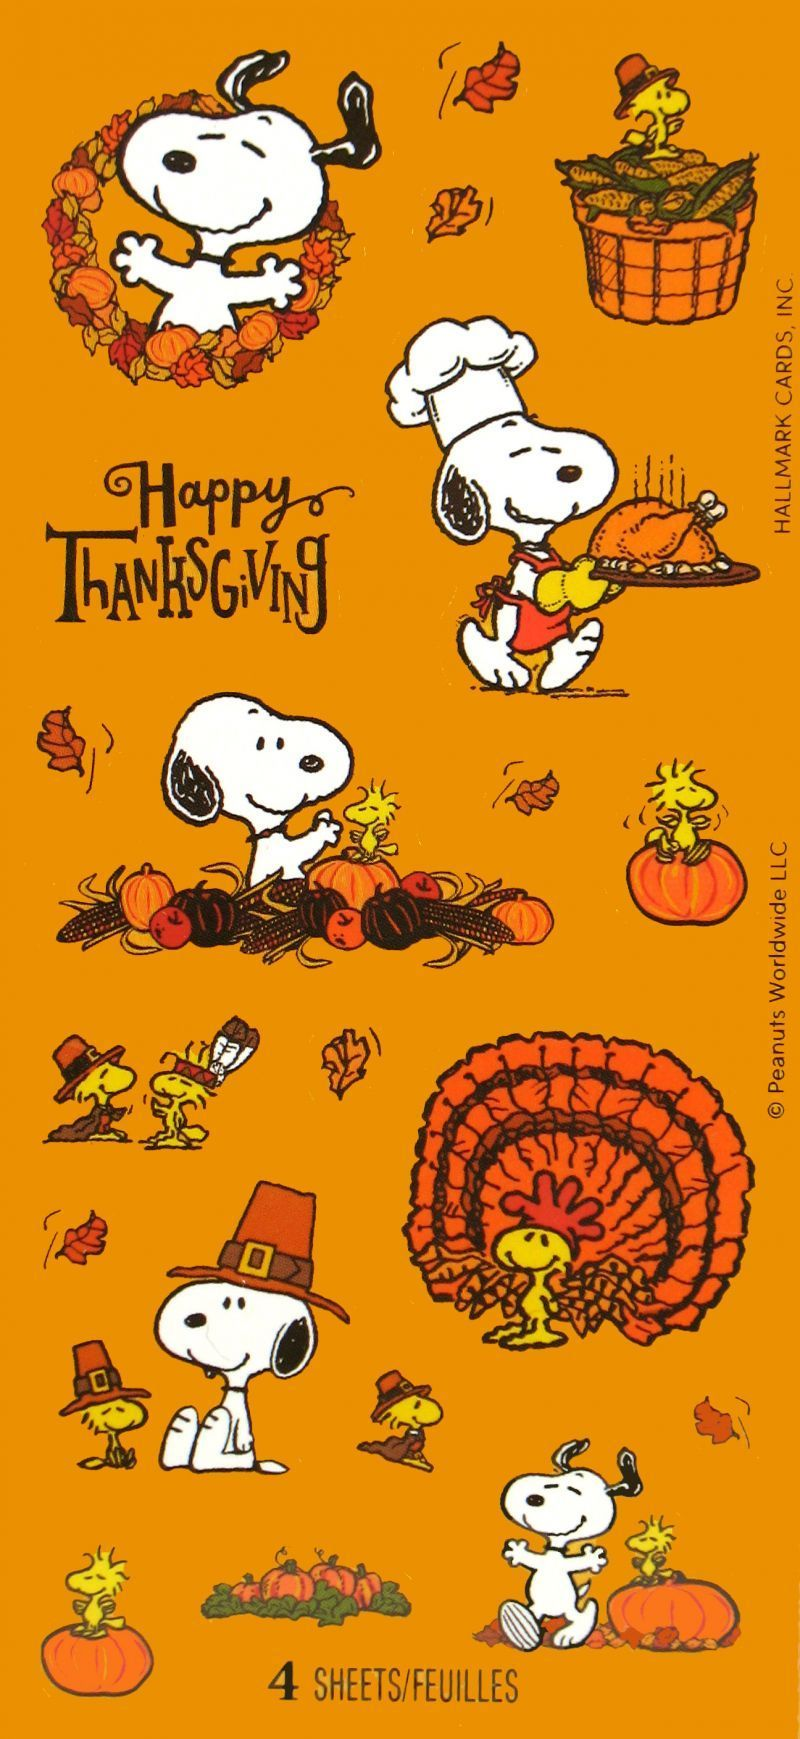 Pin by Kim Rickenbrode on Peanuts phone wallpaper Snoopy